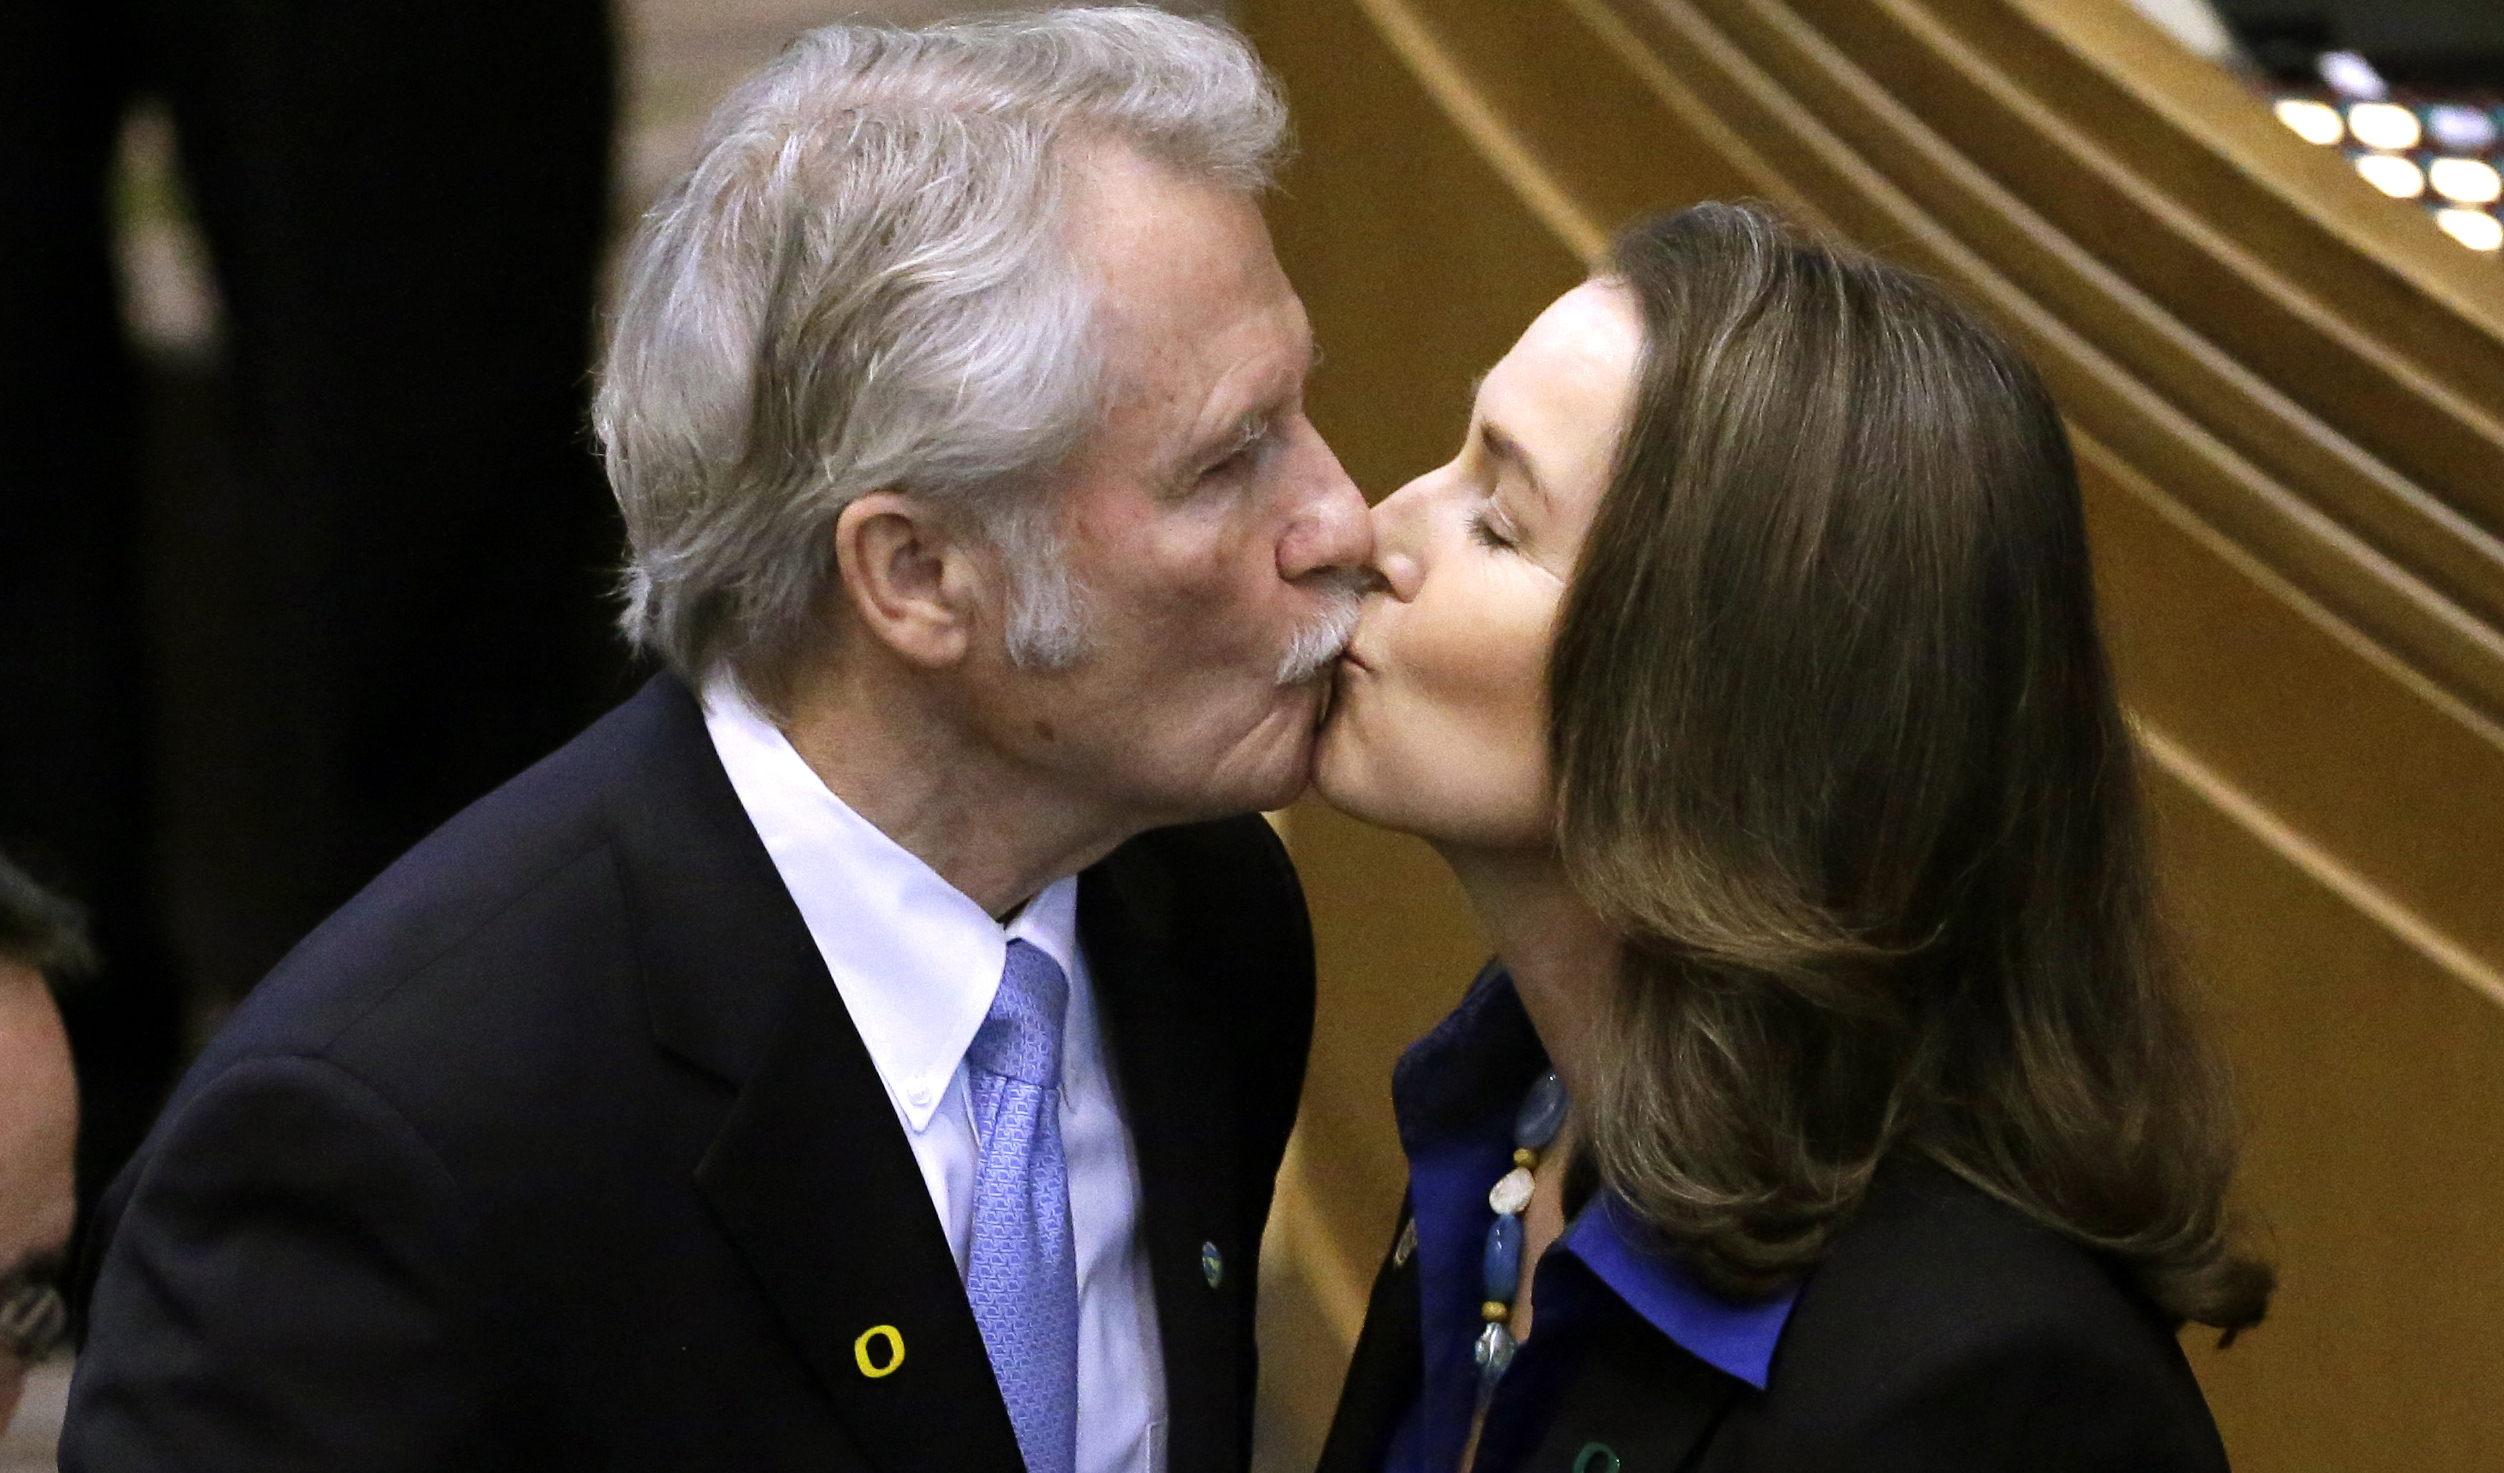 In this Jan. 12, 2015 file photo, Oregon Gov. John Kitzhaber kisses fiancee, Cylvia Hayes, after he is sworn in for an unprecedented fourth term as Governor in Salem, Ore.  (AP Photo/Don Ryan)